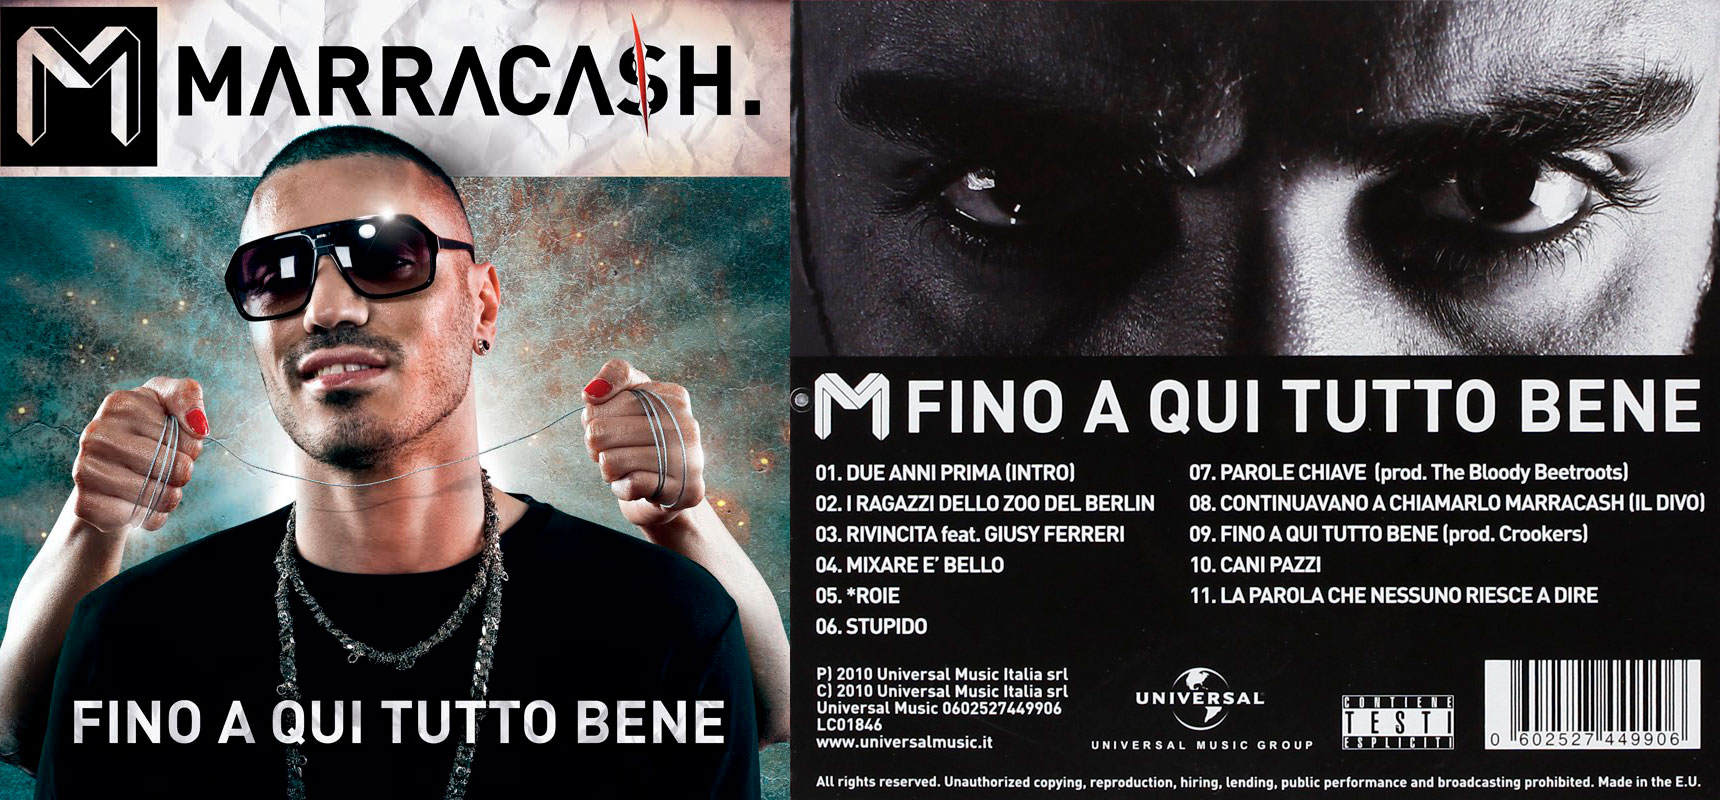 MARRACASH - Fino a qui tutto bene